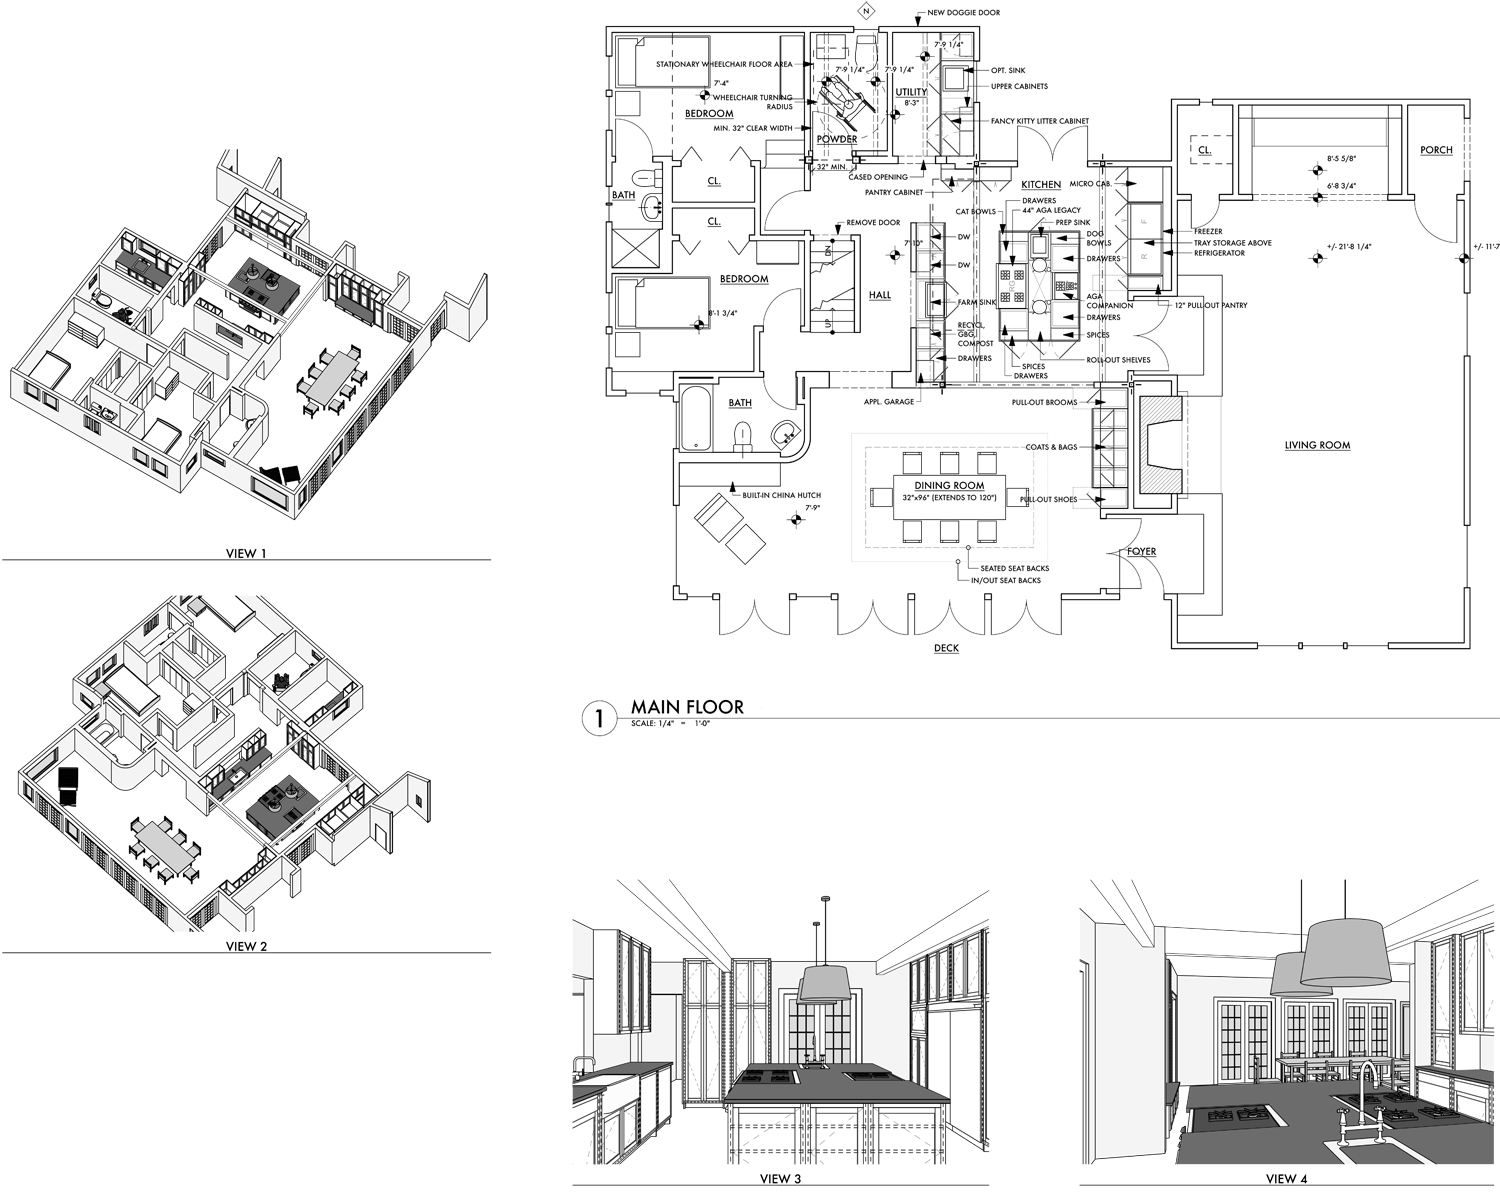 DESIGN DEVELOPMENT DRAWINGS